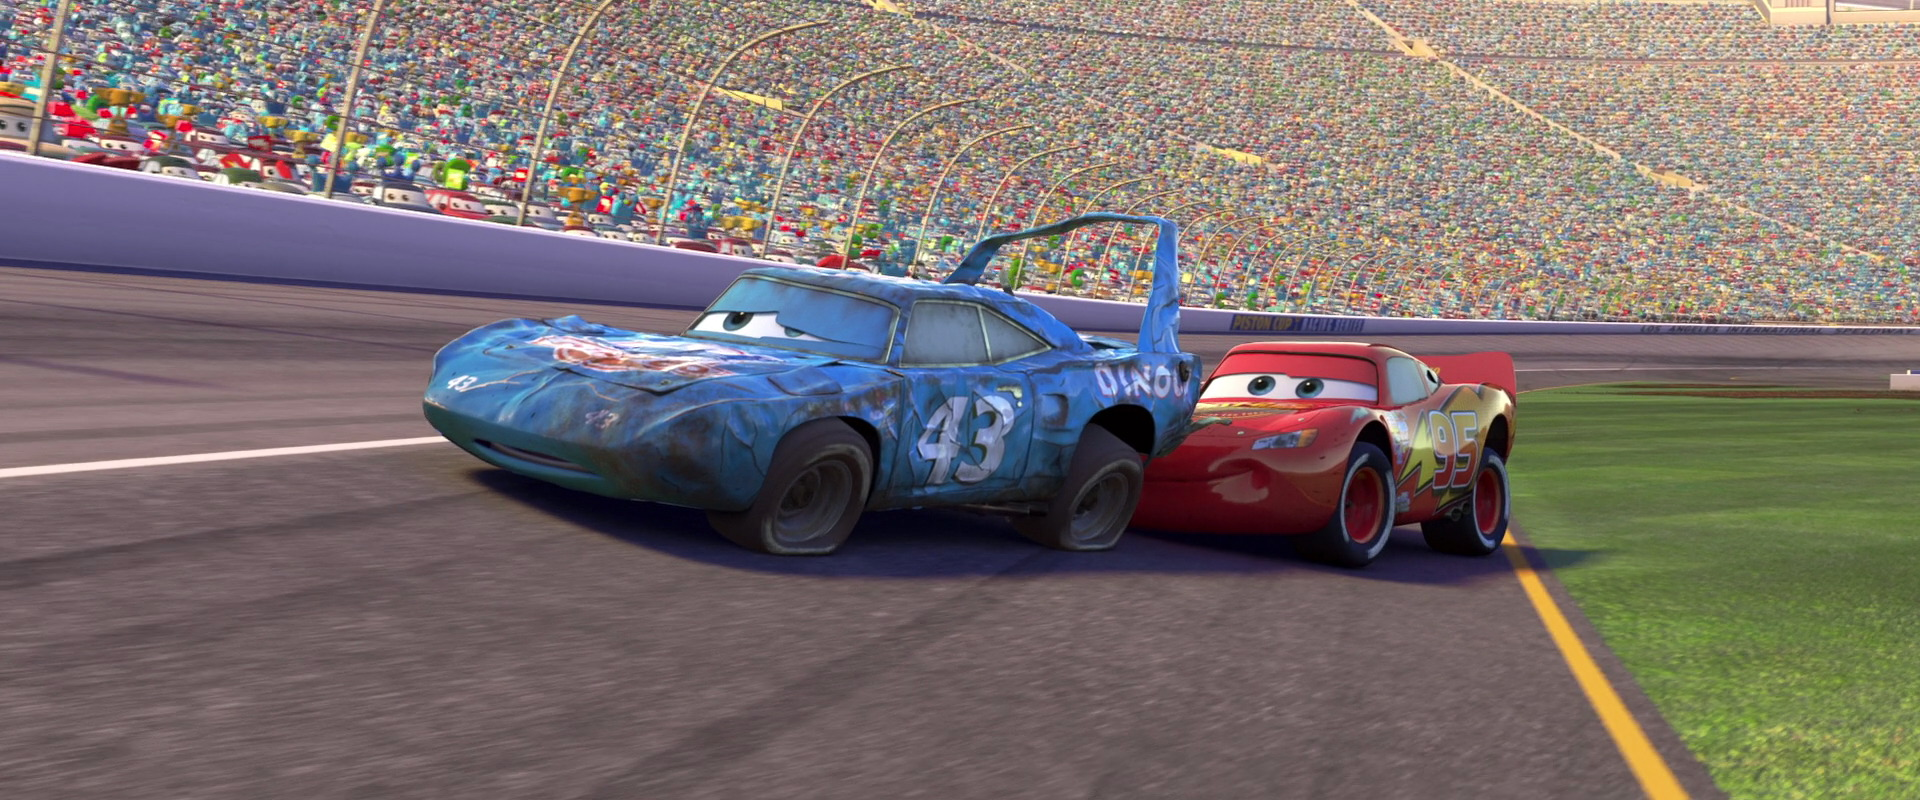 McQueen helps to have The King finish his last race. : lighting mcqueen racing - www.canuckmediamonitor.org